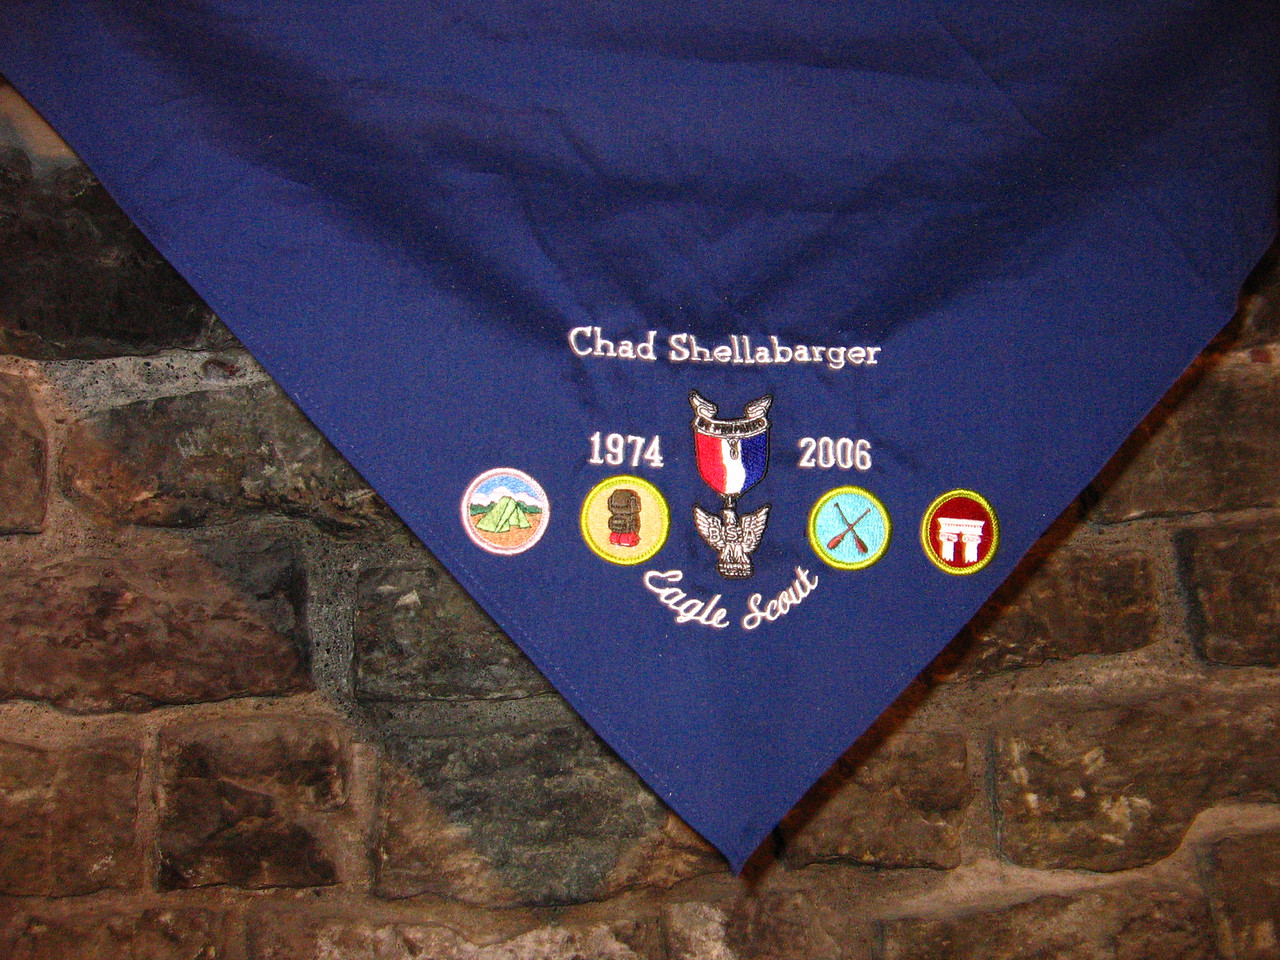 We adorned it with Merit Badges that we thought represented Chad well:  Camping, Backpacking, Paddling and Architecture.